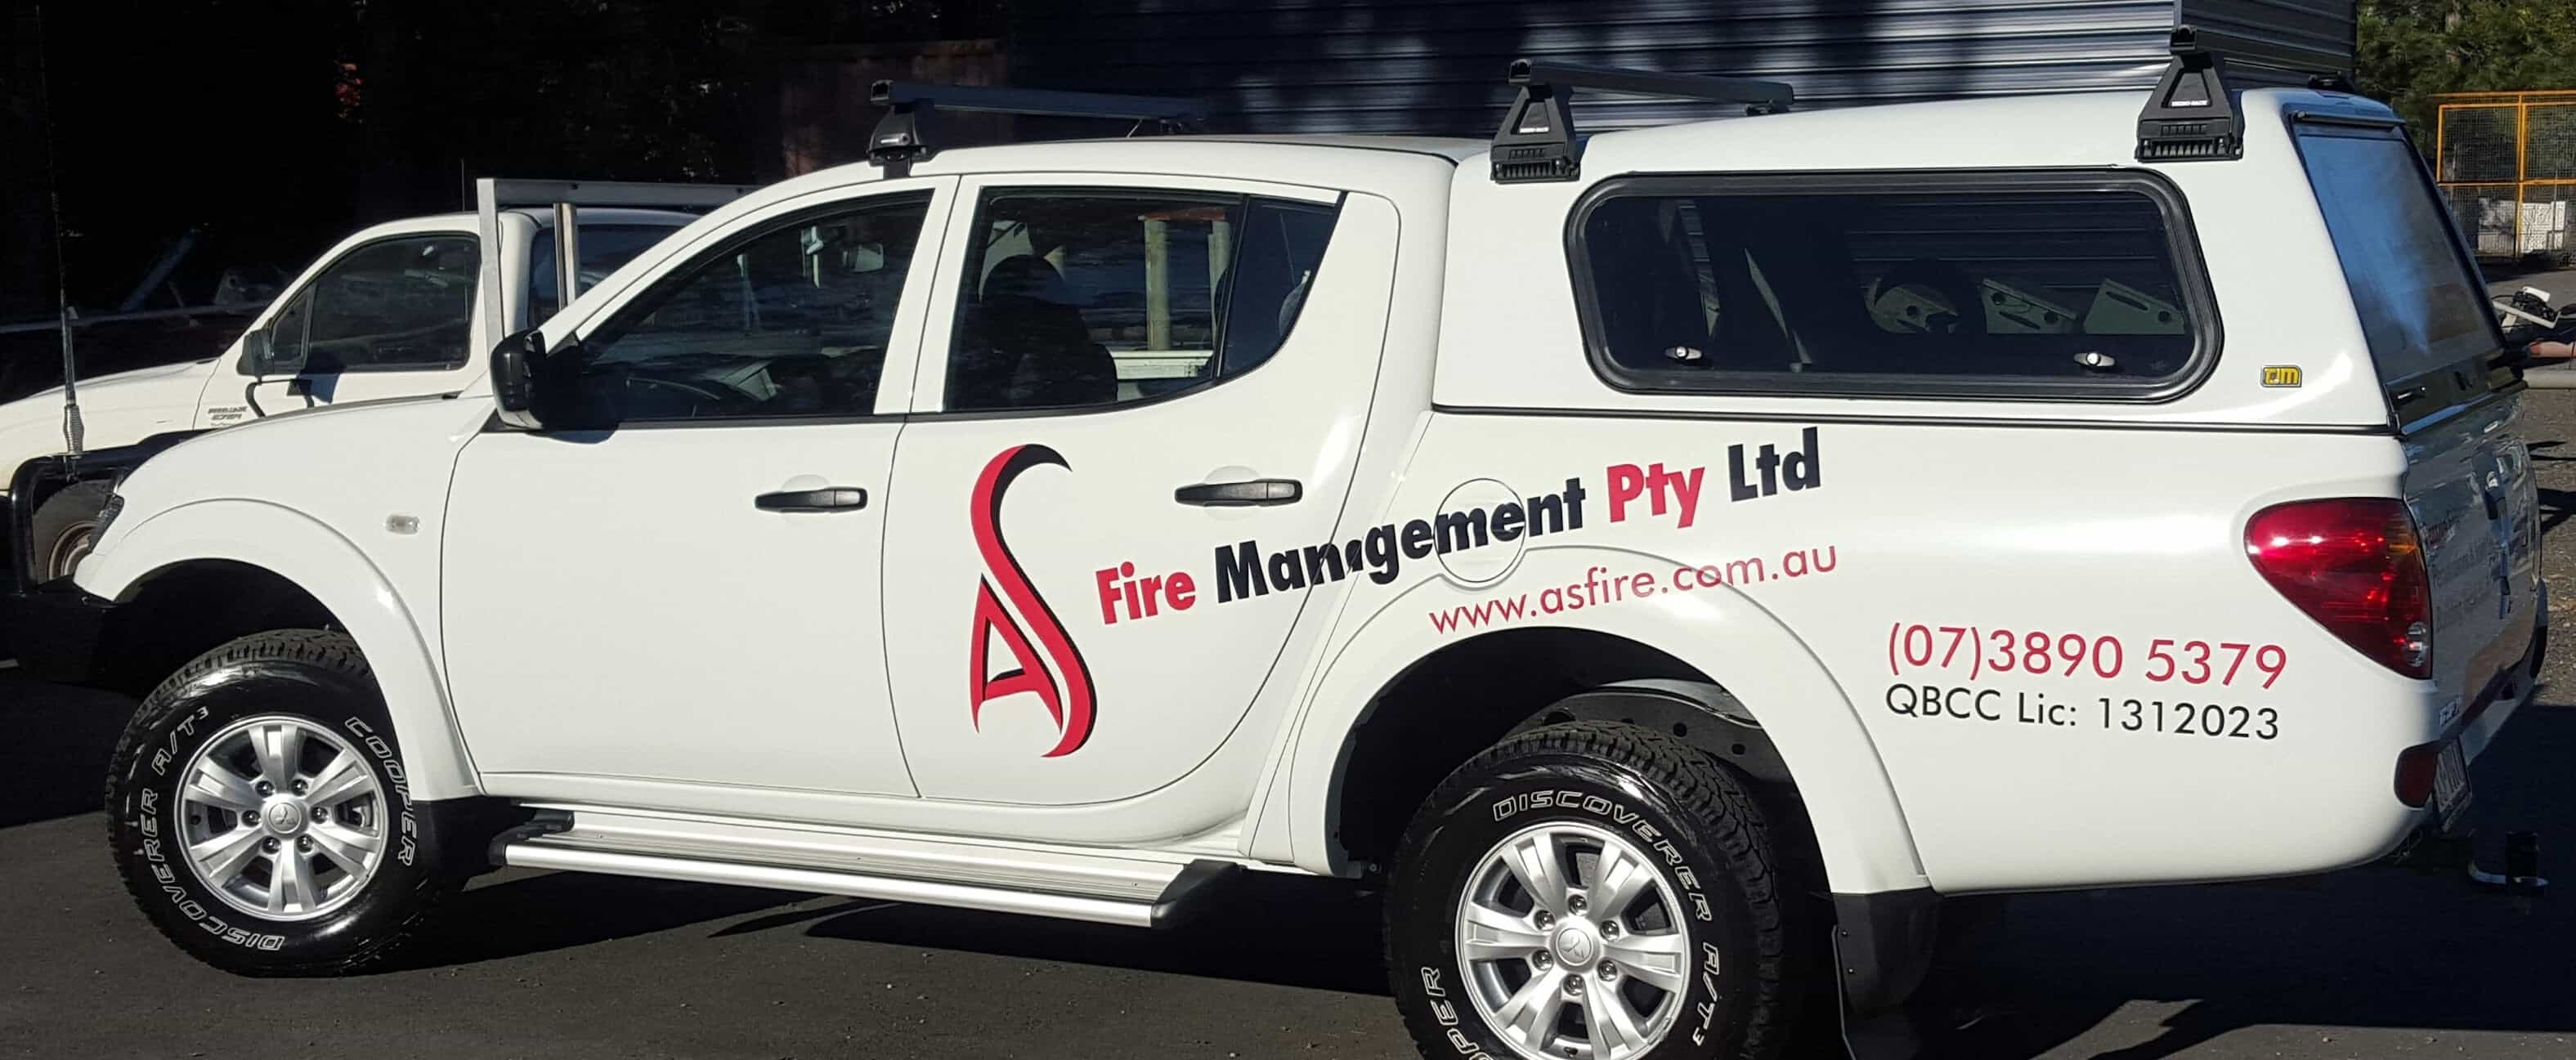 Fire Protection Services Brisbane CBD